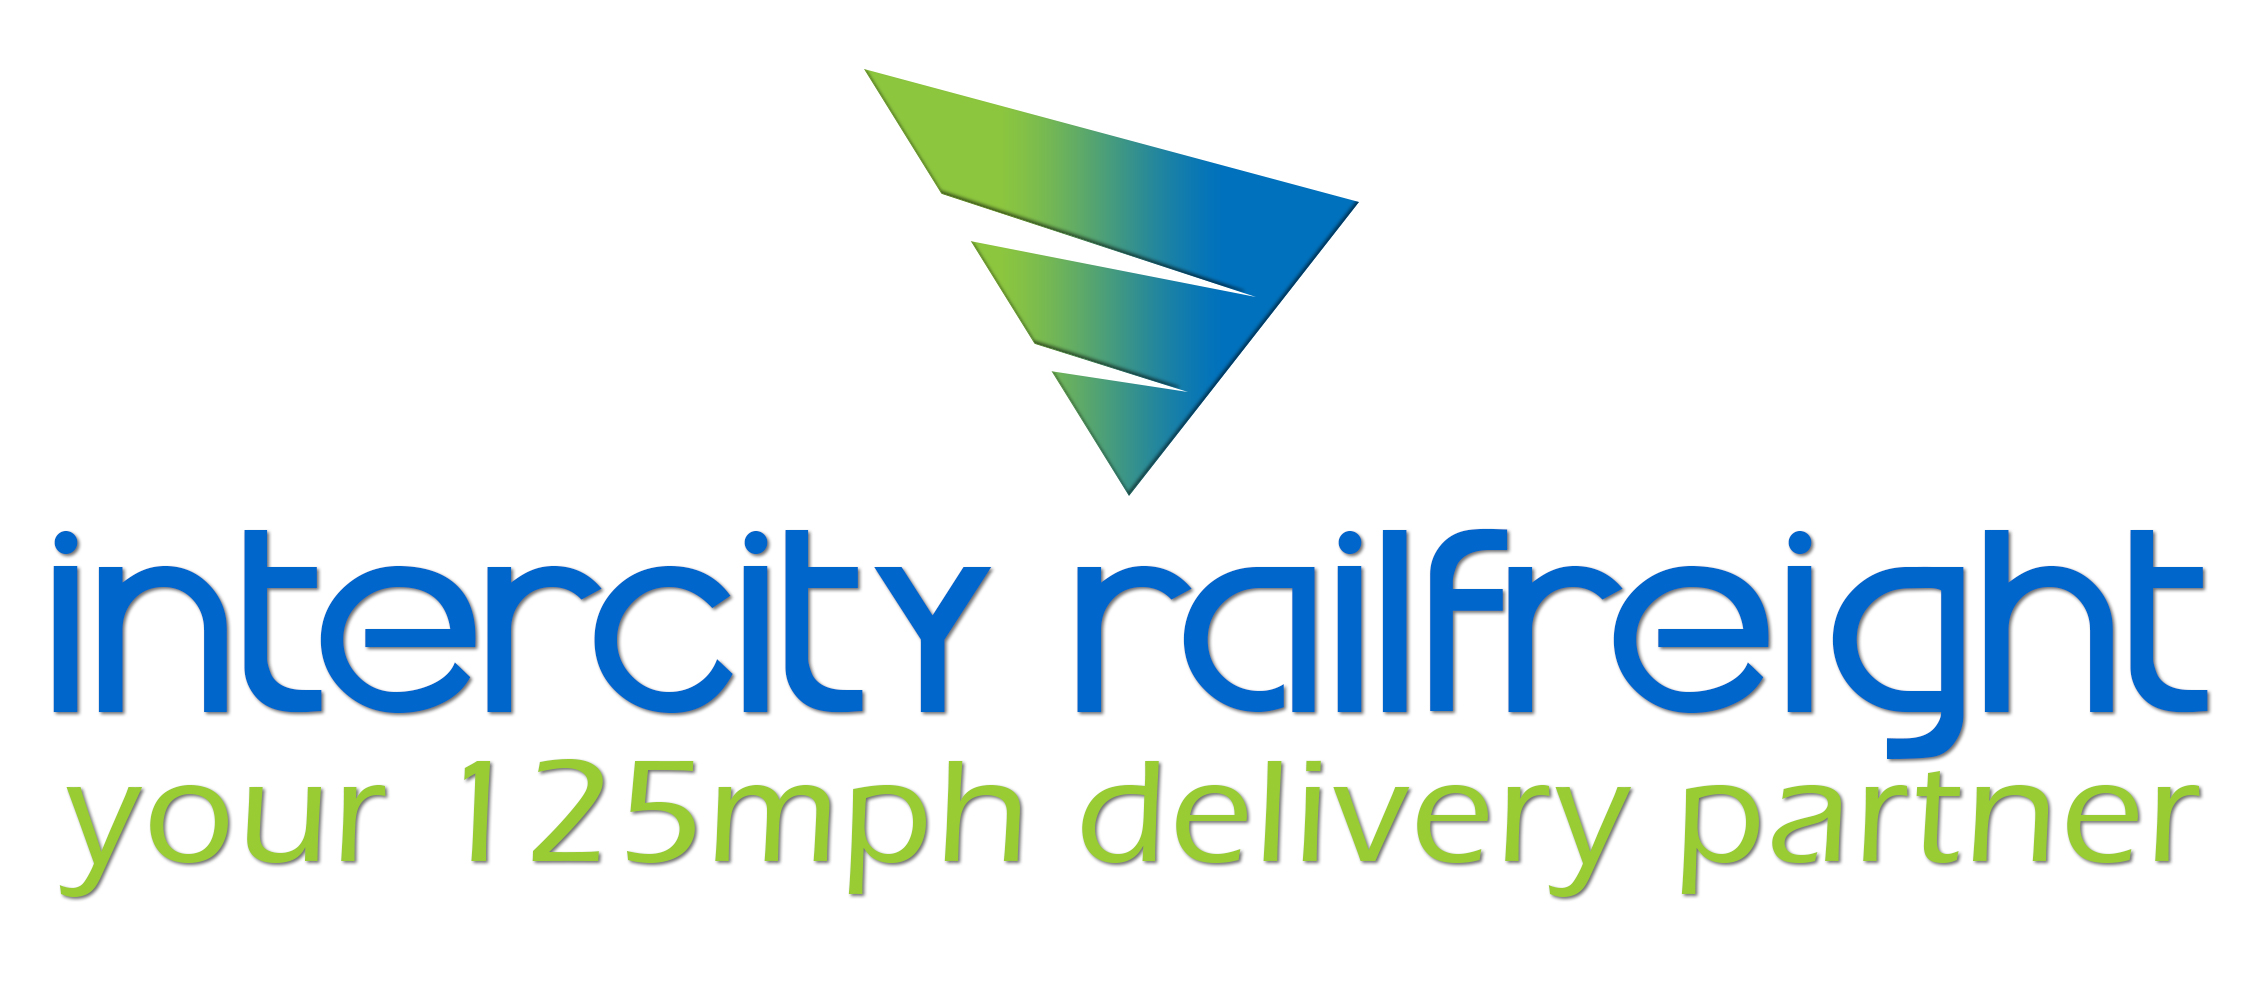 Intercity Railfreight